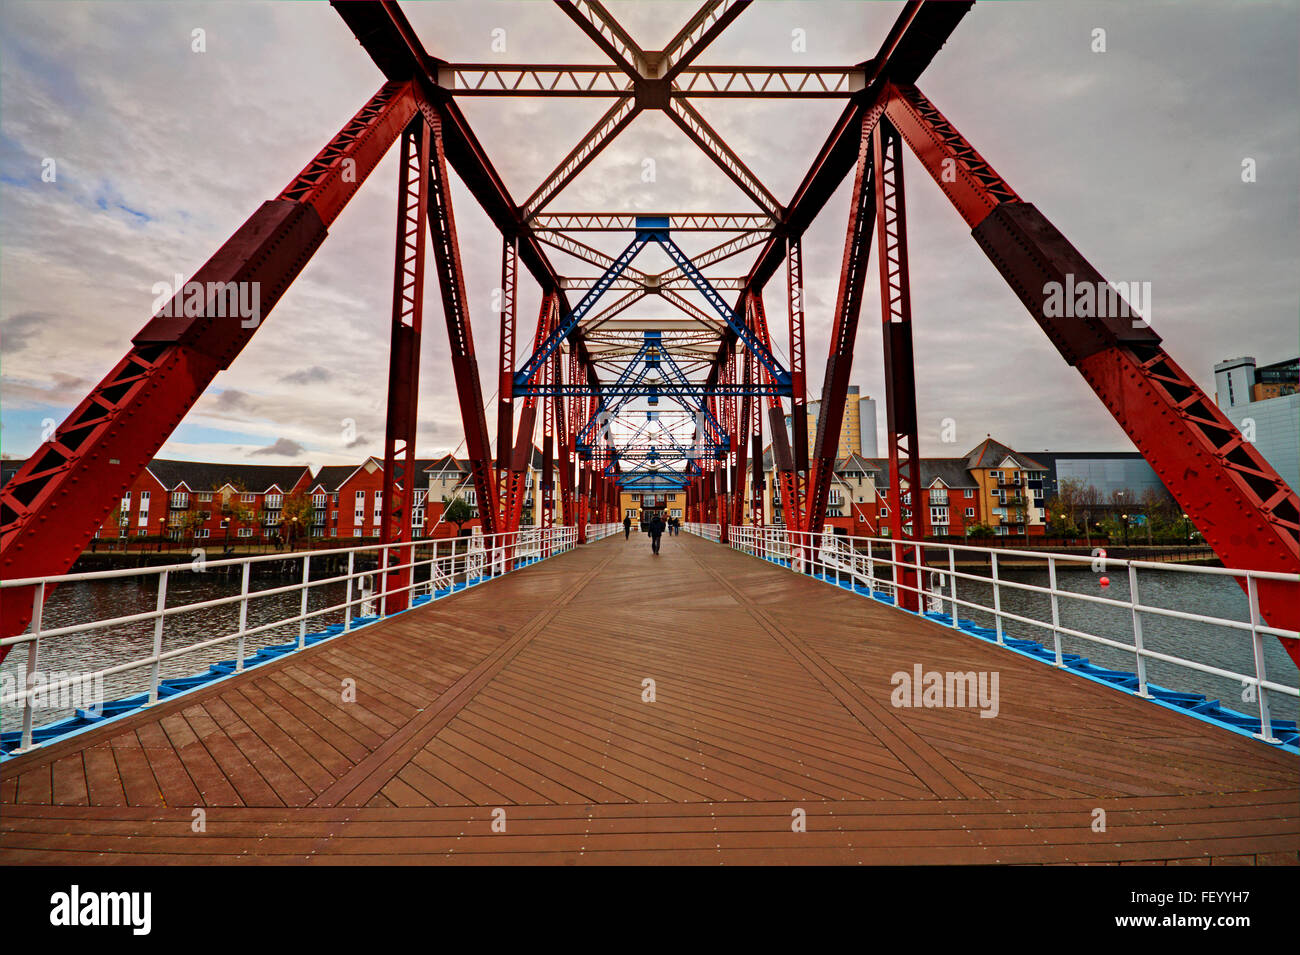 Crossing the rotating former railway bridge at Salford Quays, Manchester - Stock Image